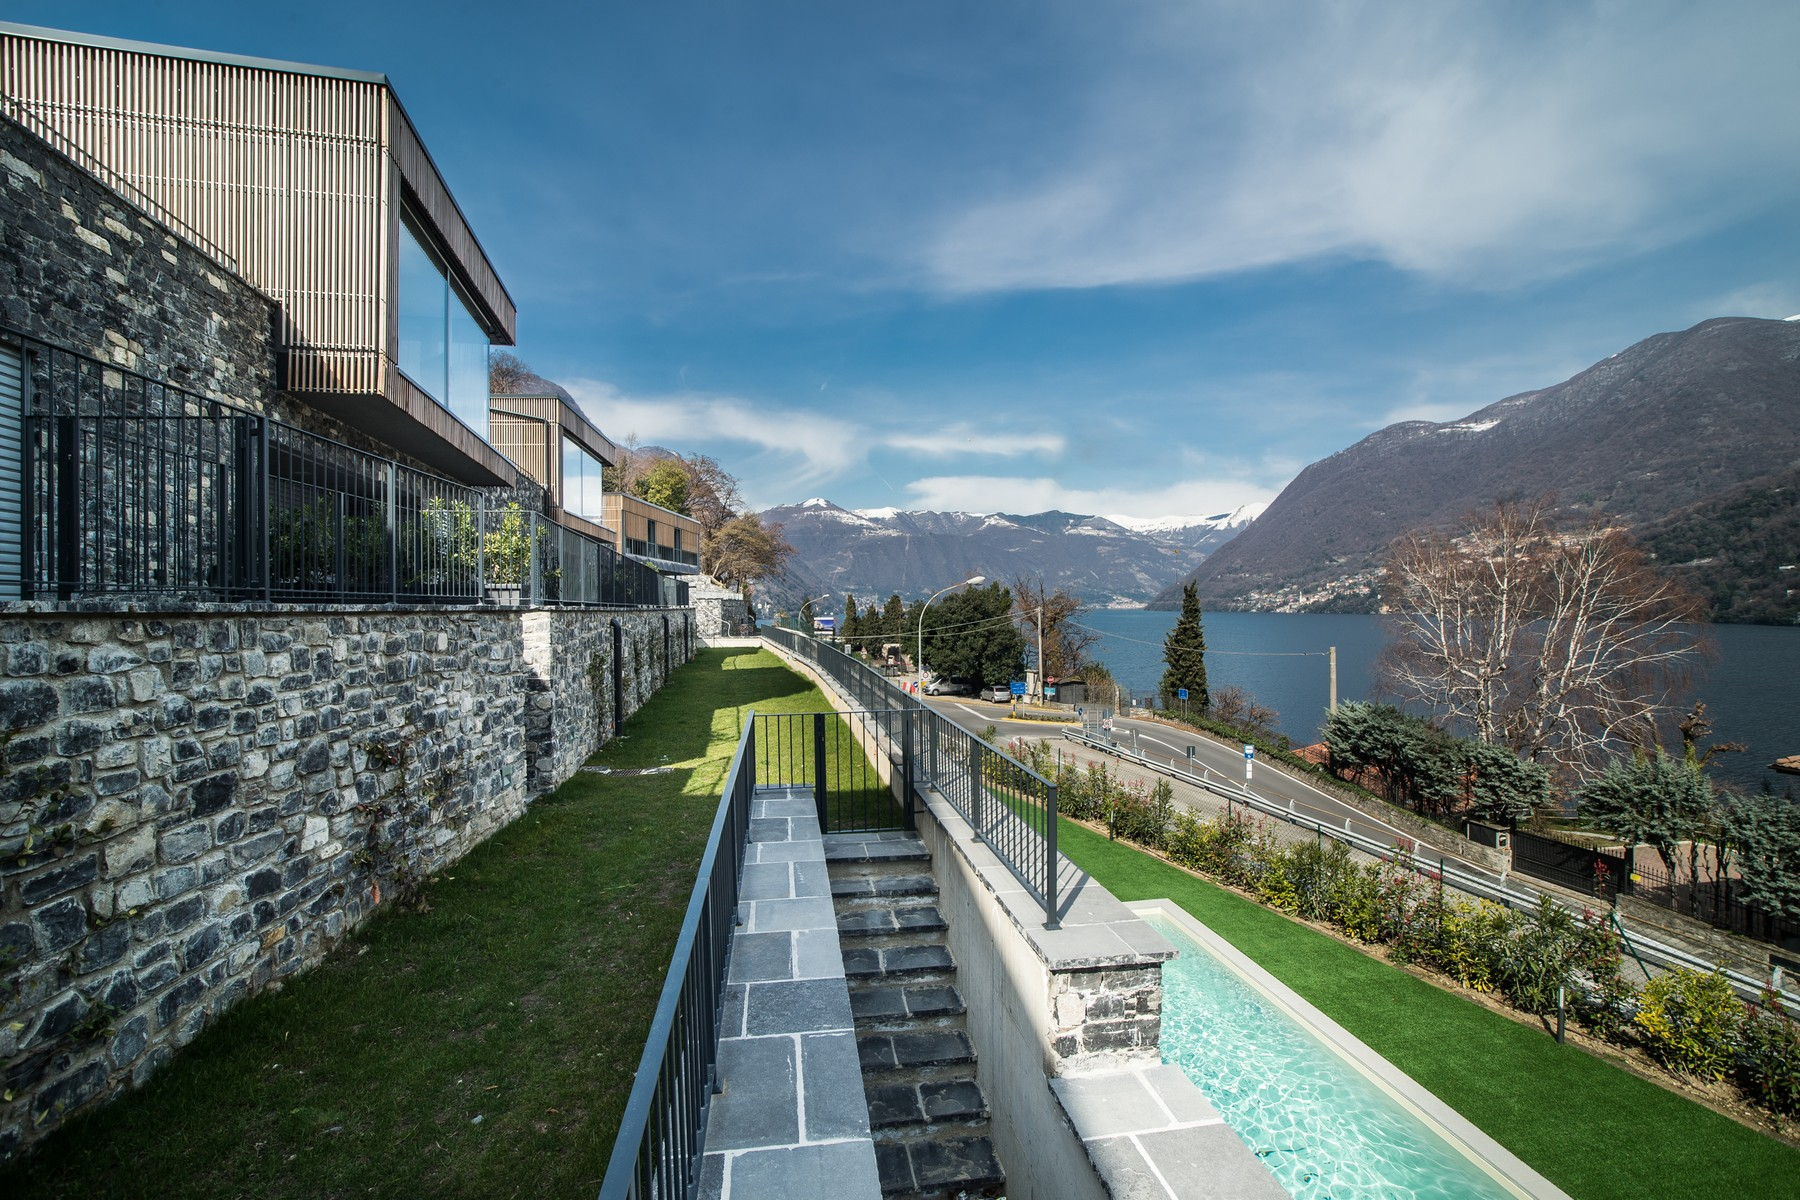 Additional photo for property listing at Prestigious modern villa with private swimming pool and magnificent Lake views Laglio Laglio, Como 22010 Italien